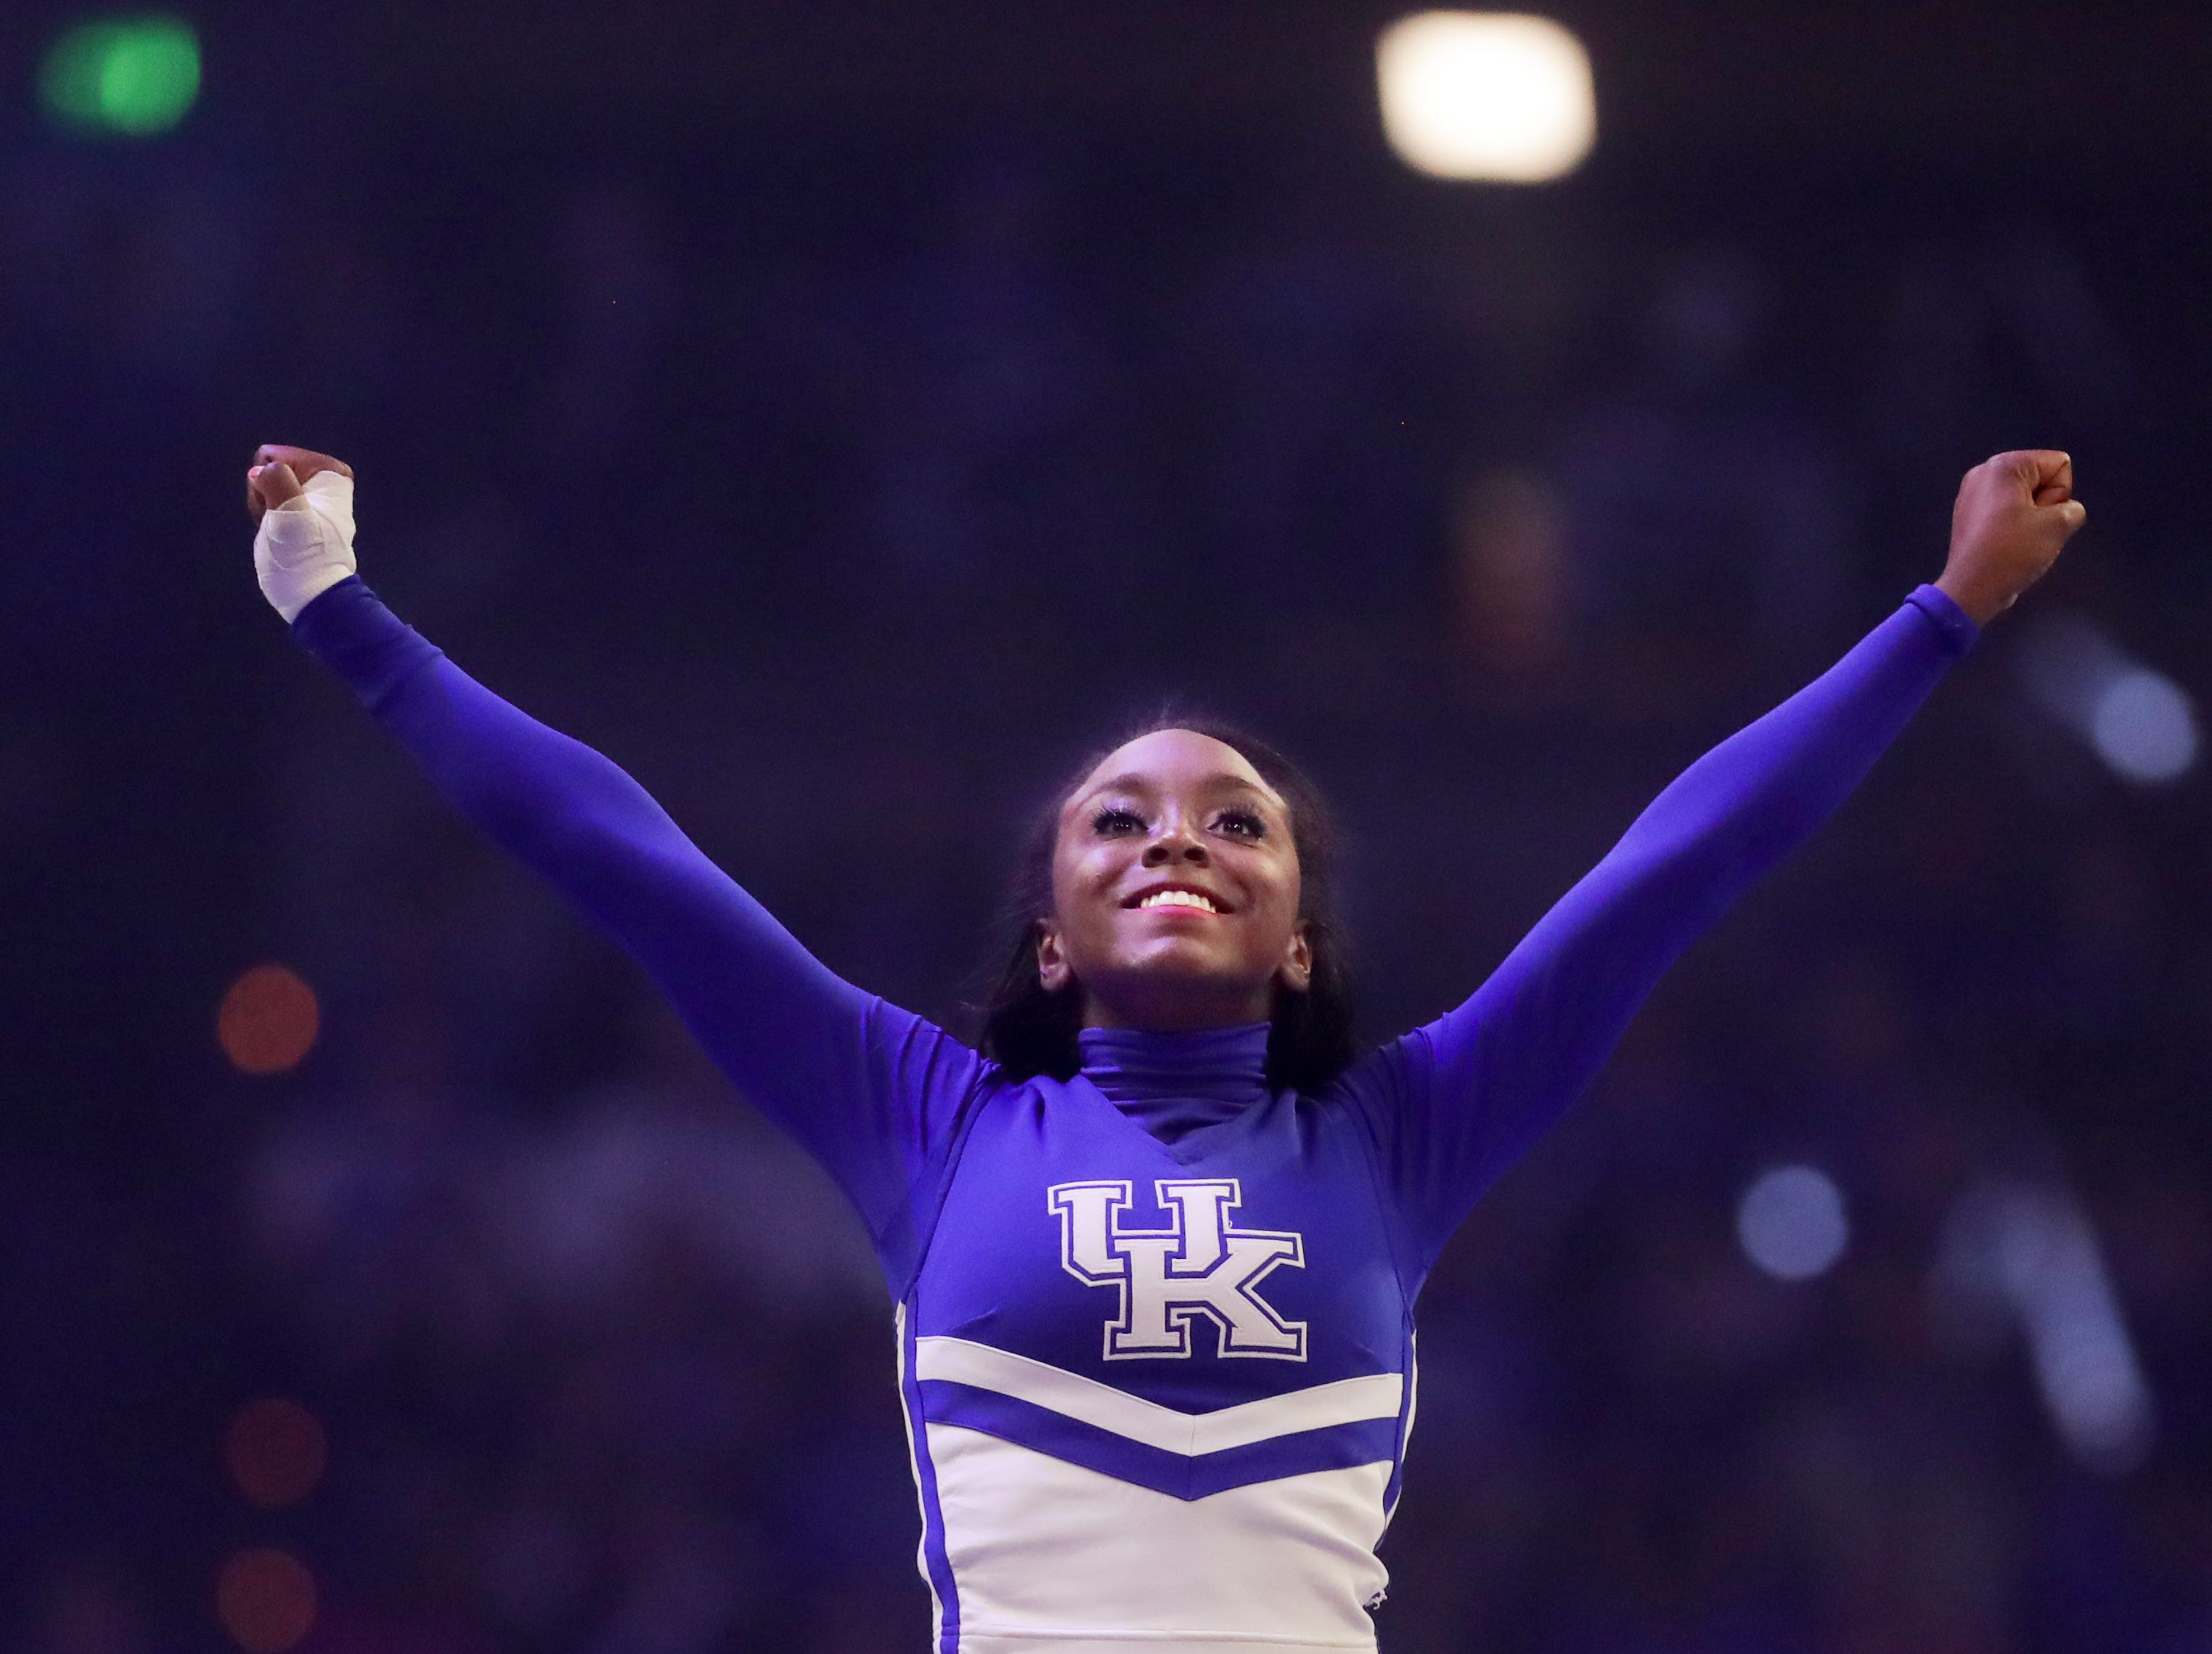 Kentucky Wildcats cheer squad performs at Big Blue Madness in Lexington, Kentucky.